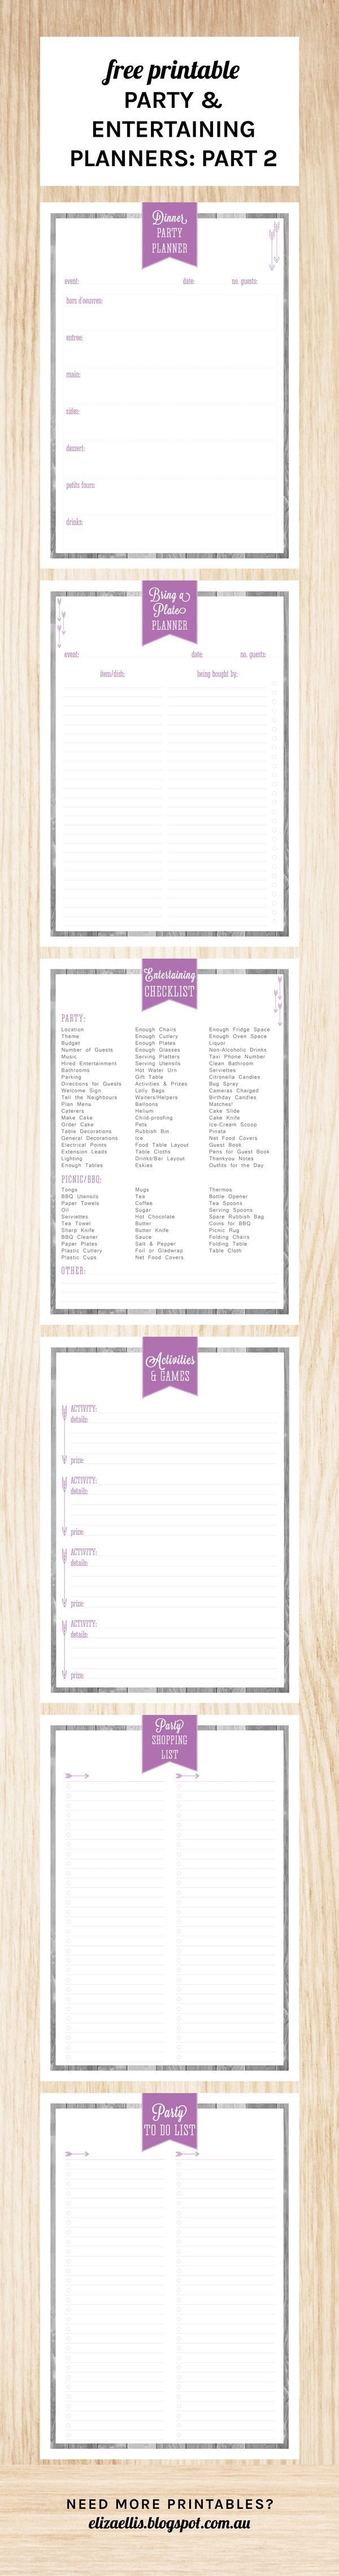 Free Printable Party  Entertaining Planners Part  This Set